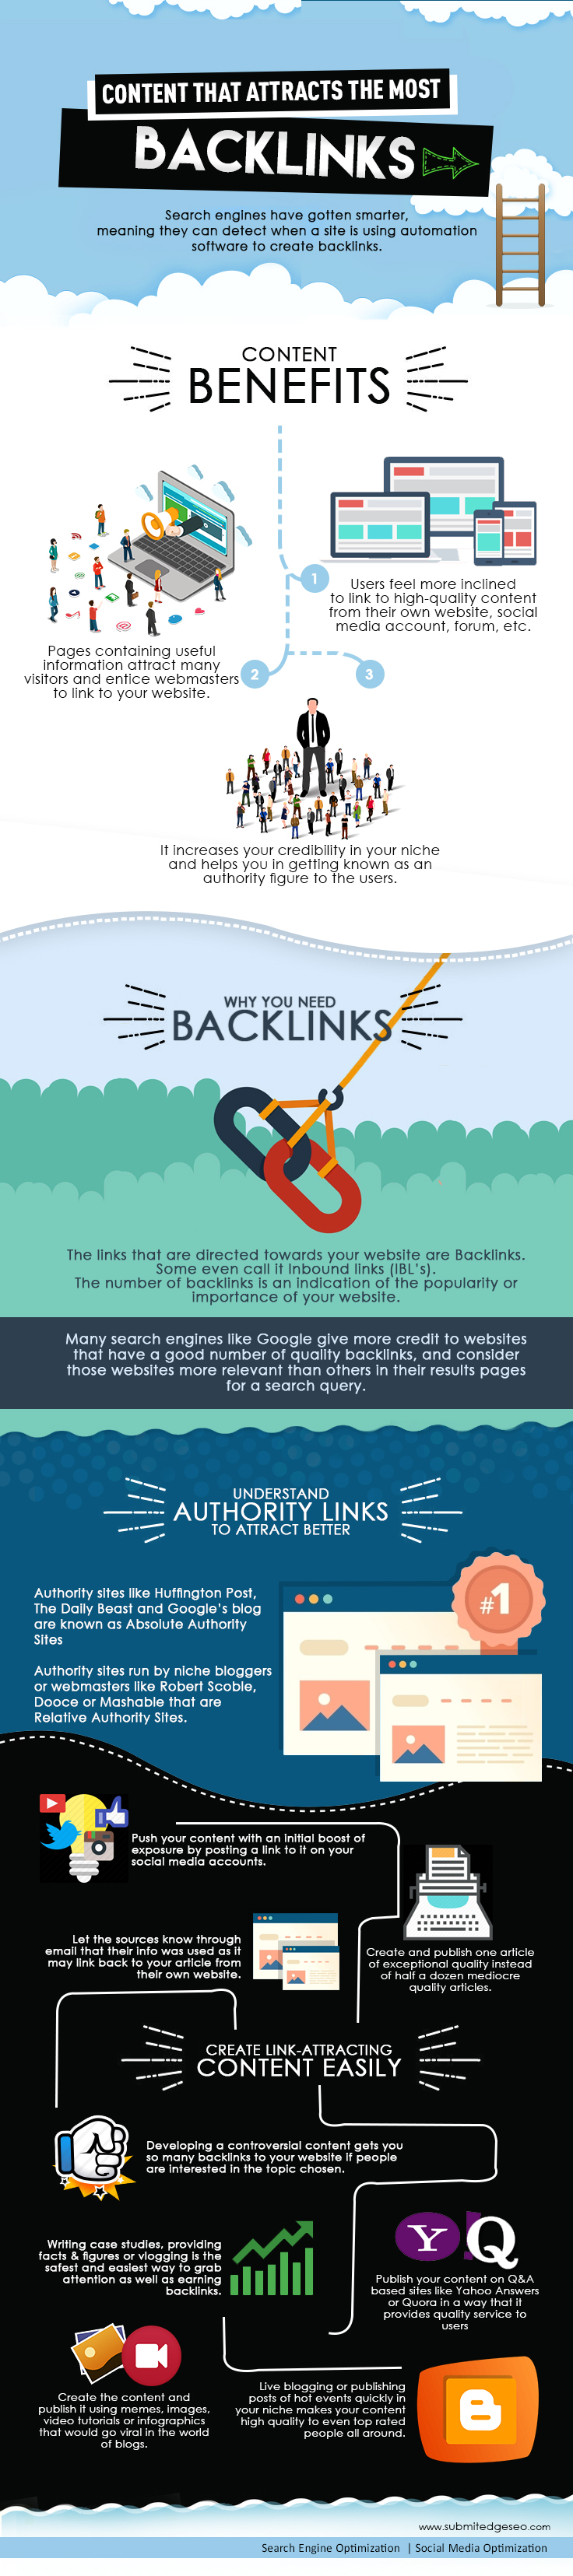 Content That Attracts The Most Backlinks by SubmitedgeSEO